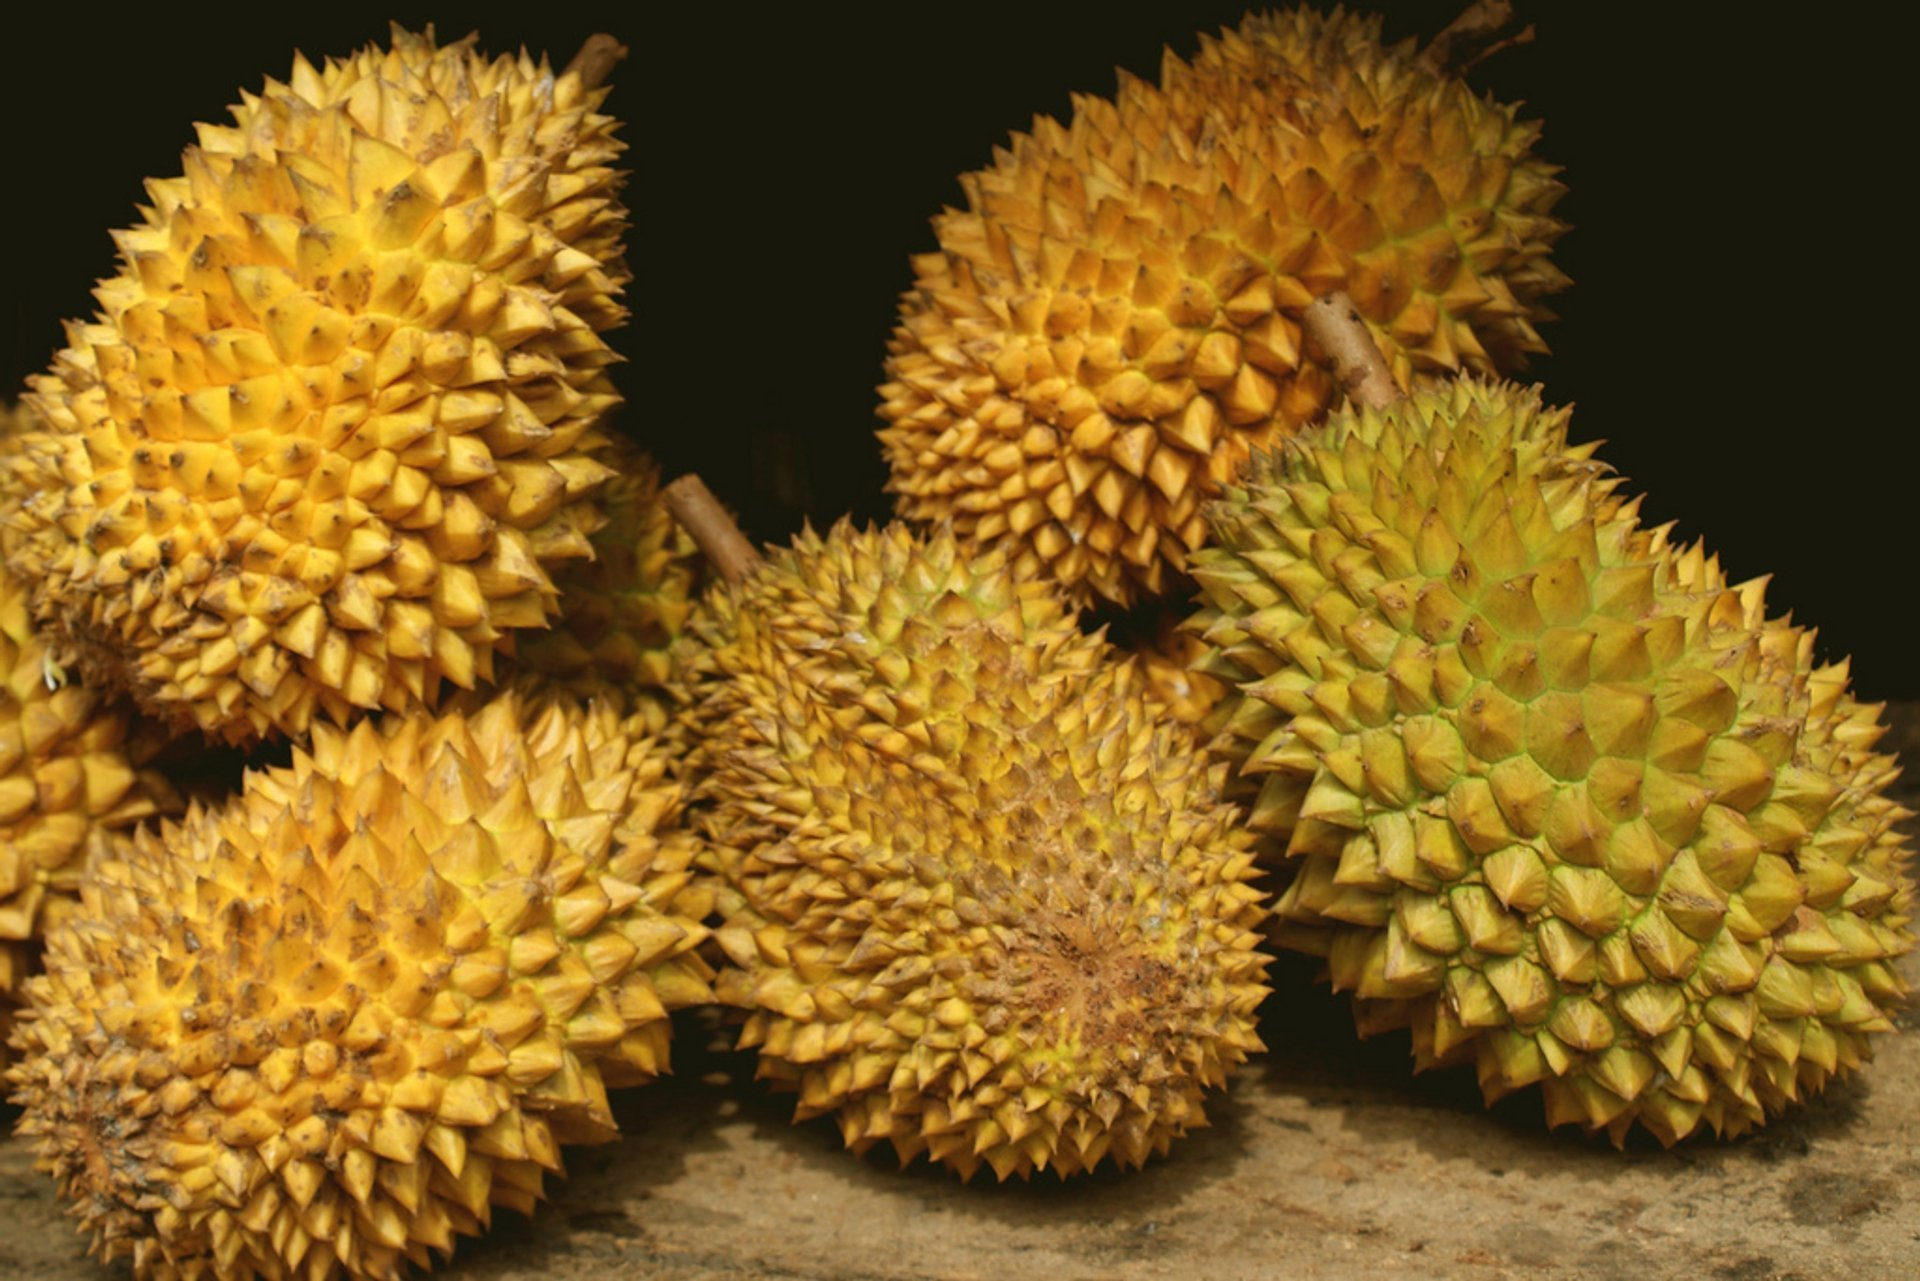 Durian in Sri Lanka 2020 - Best Time